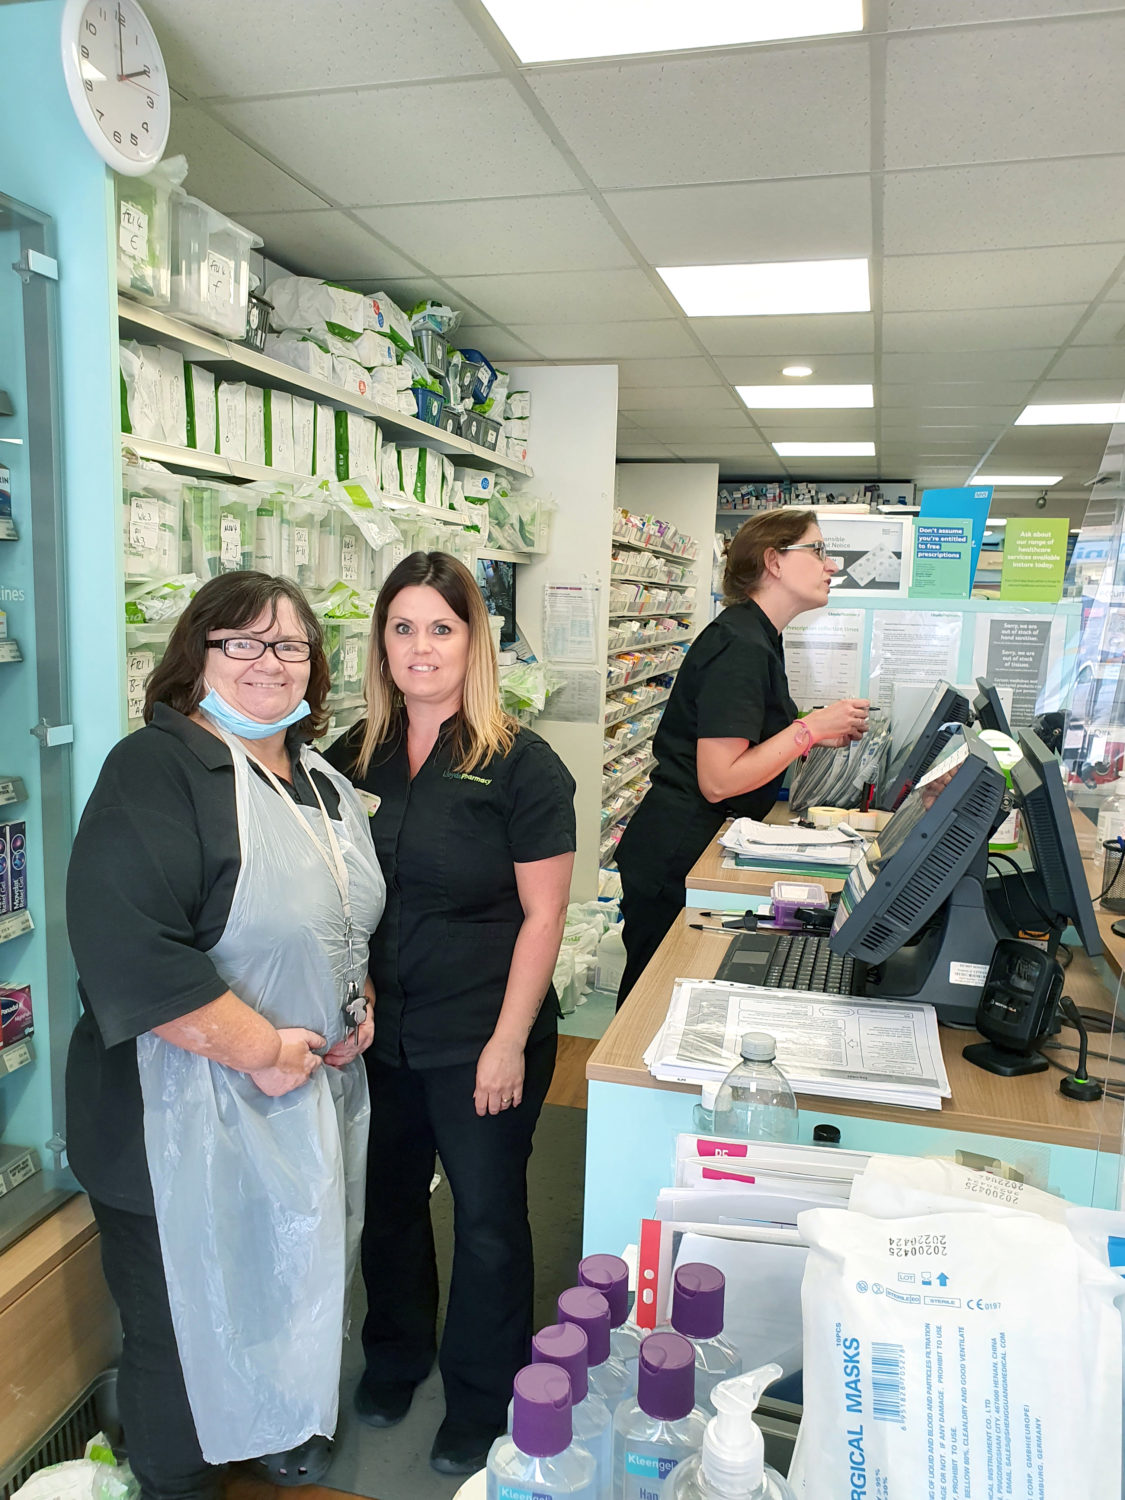 Staff in the shop at Lloyds Pharmacy, Heavitree